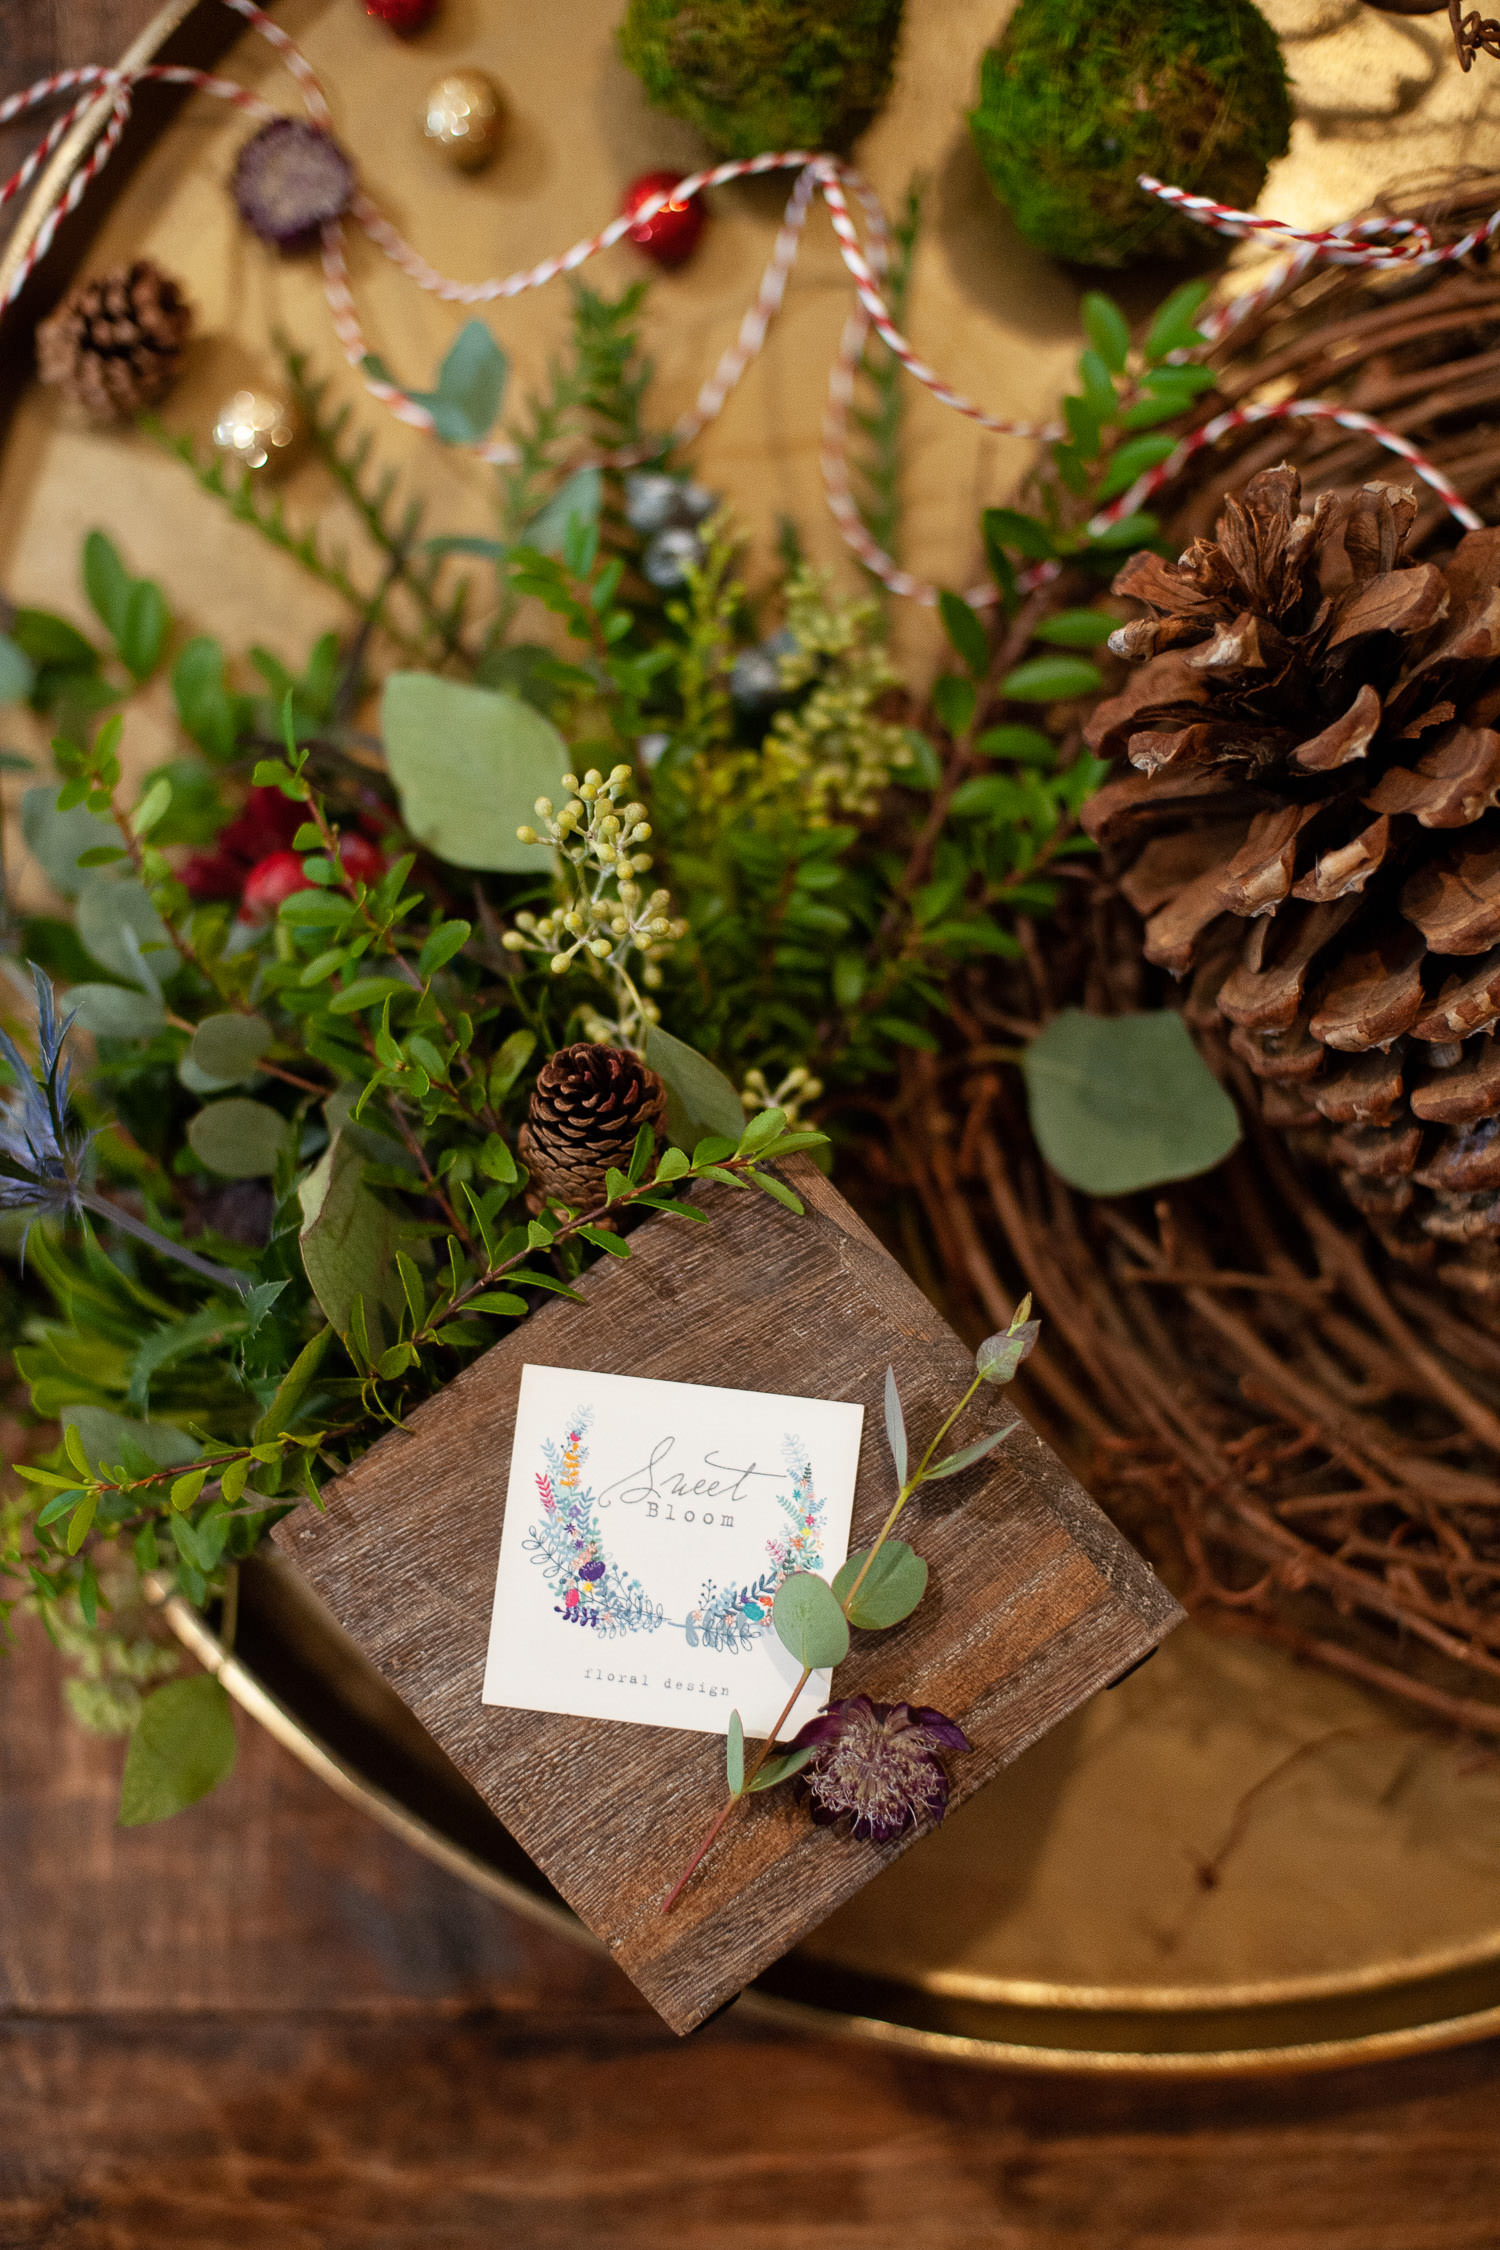 Each holiday mini session includes a festive bloom box from Sweet Bloom Floral Design